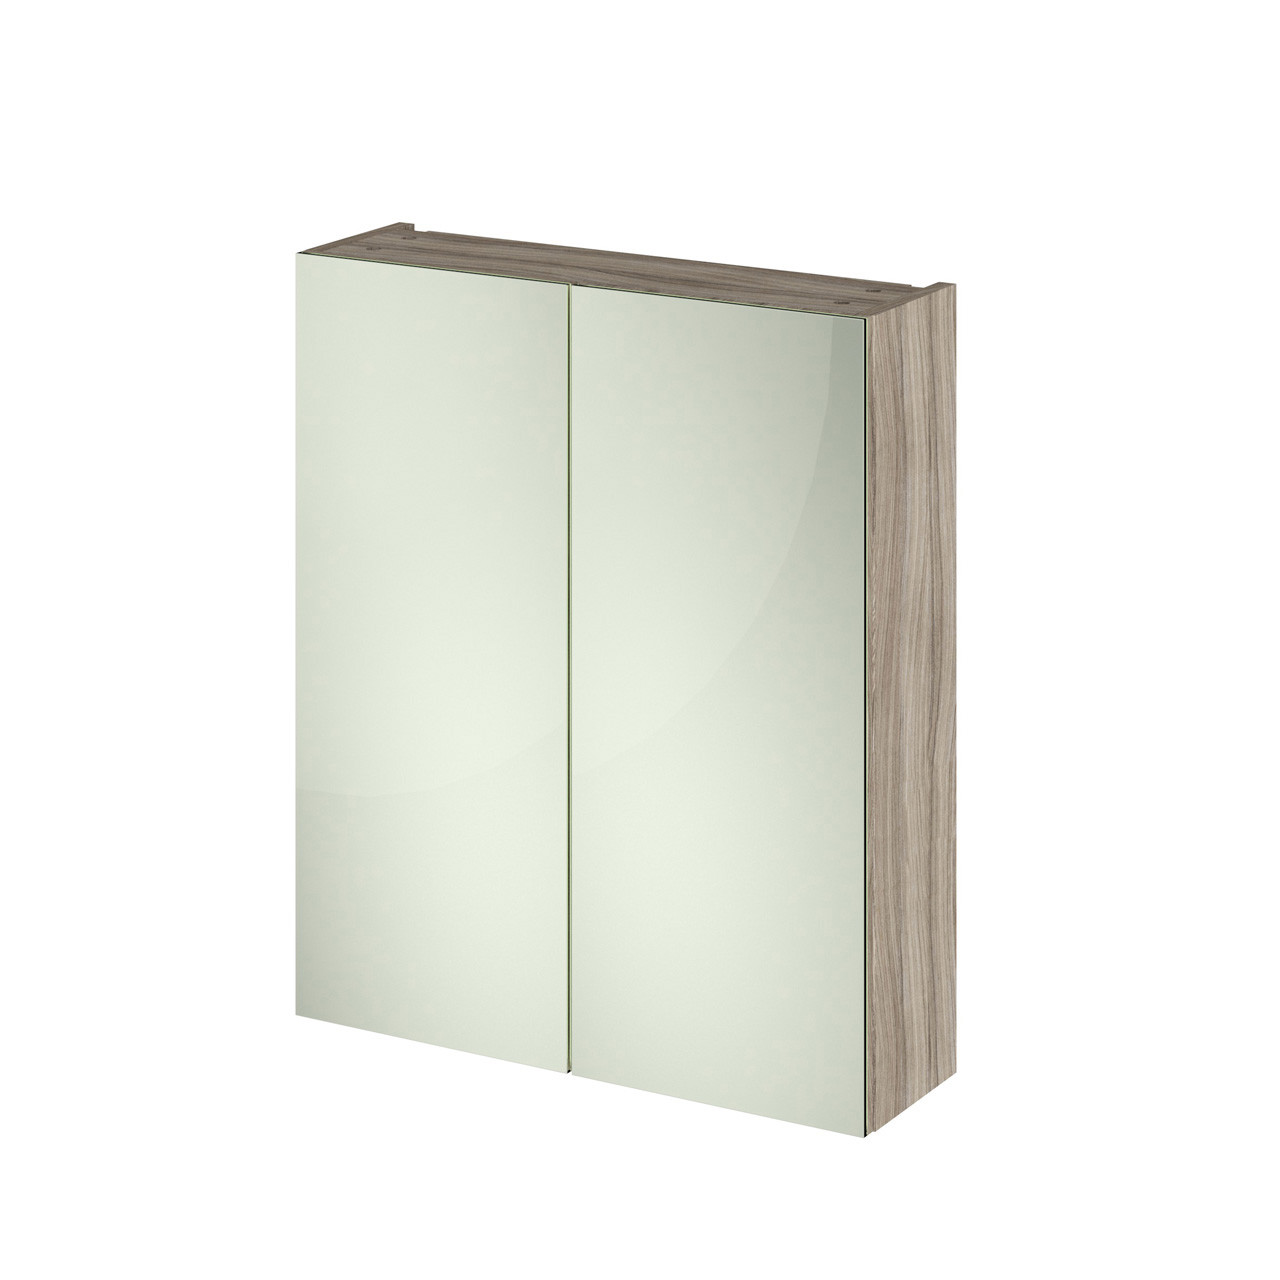 Hudson reed 600 fitted mirror unit 50 50 715mm x 600mm x for Miroir 50x50